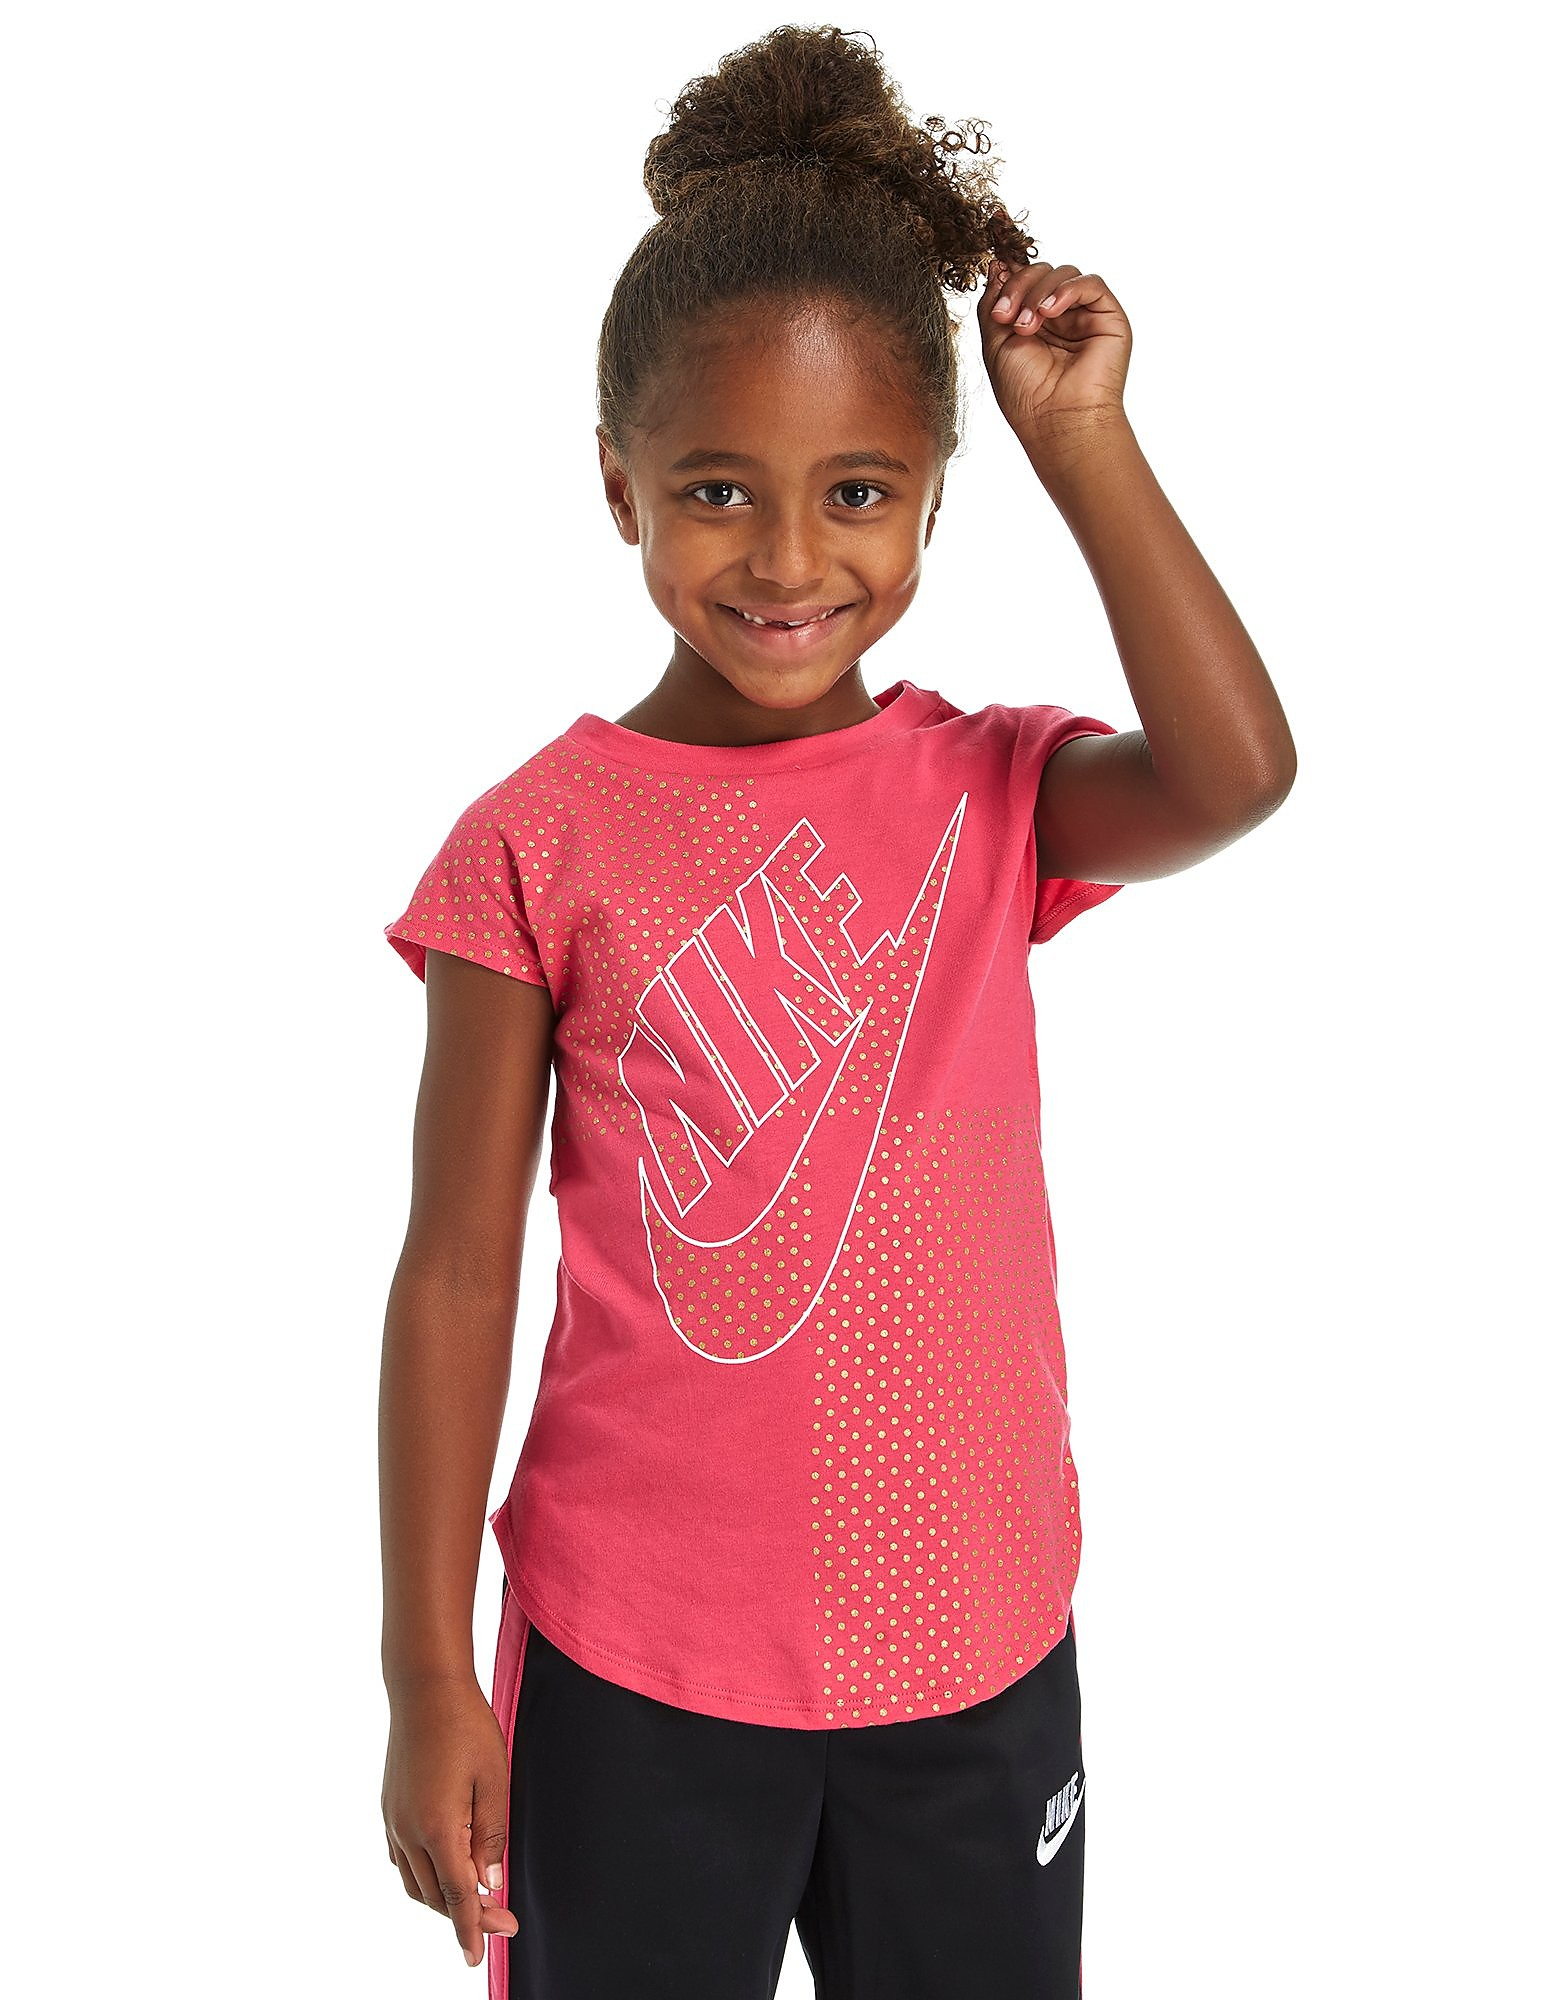 Nike Girls' Futura T-Shirt Children